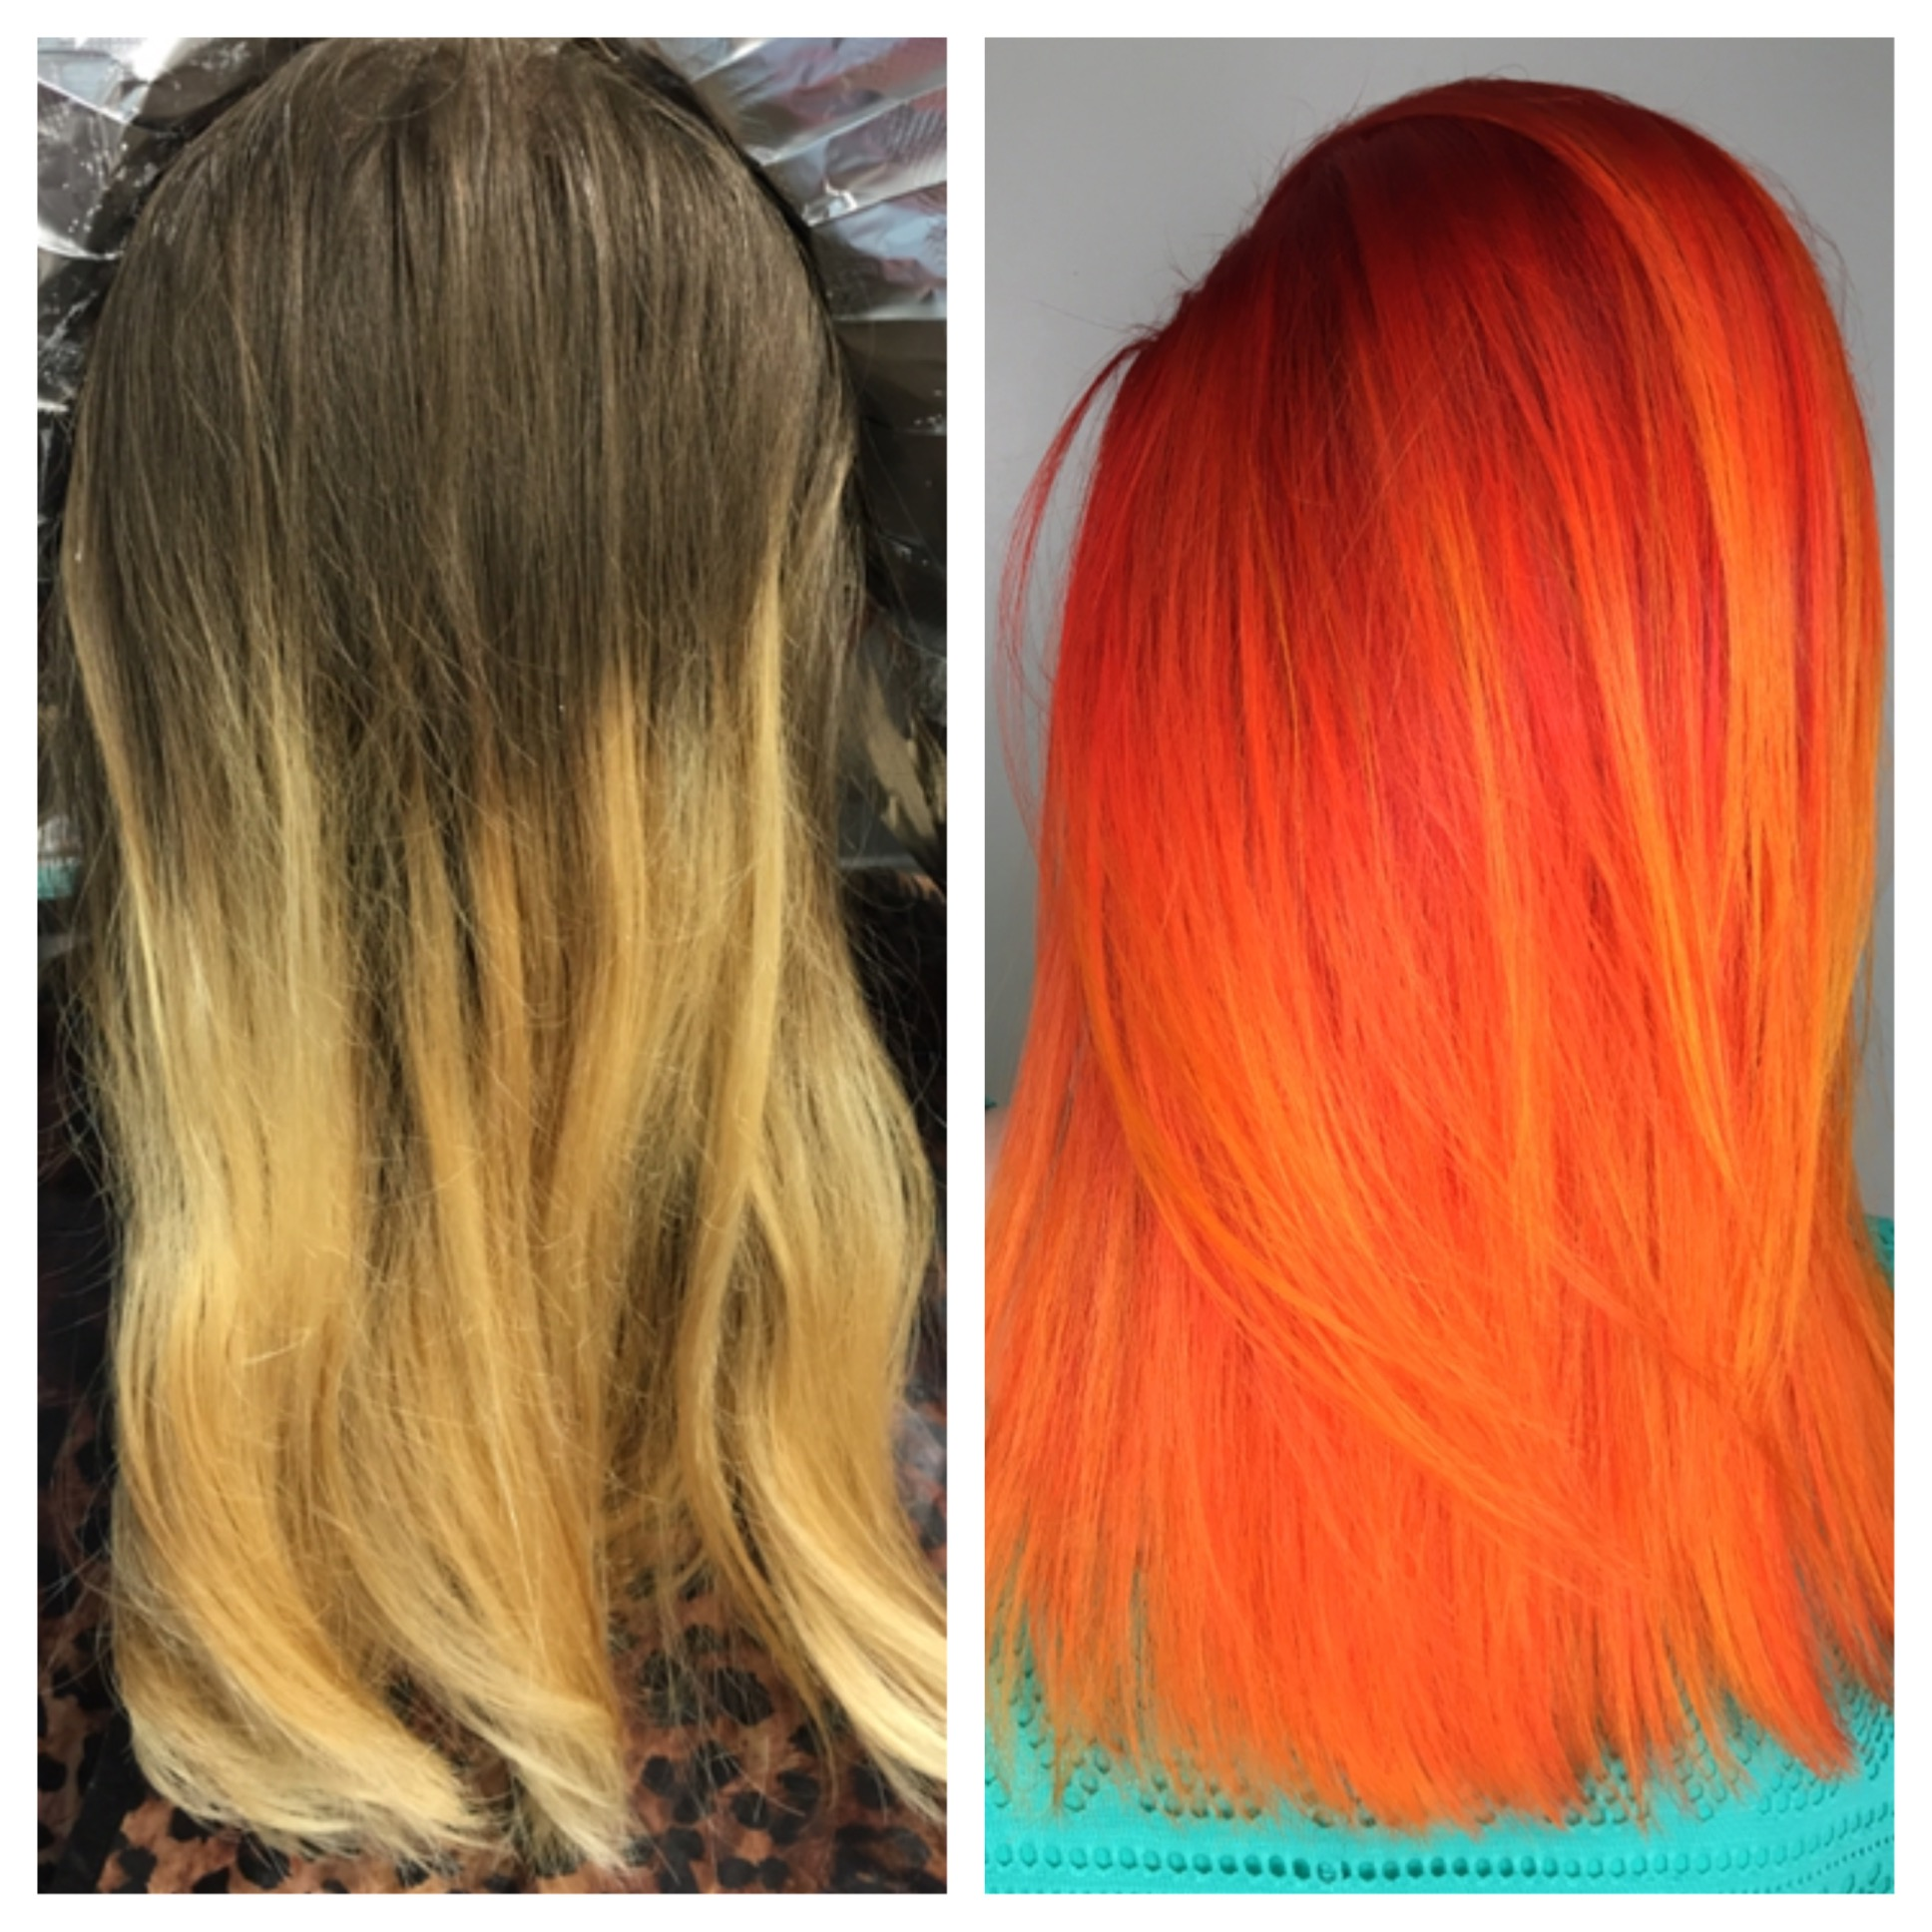 HOW-TO: Fire Hair Inspired by Guy Tang